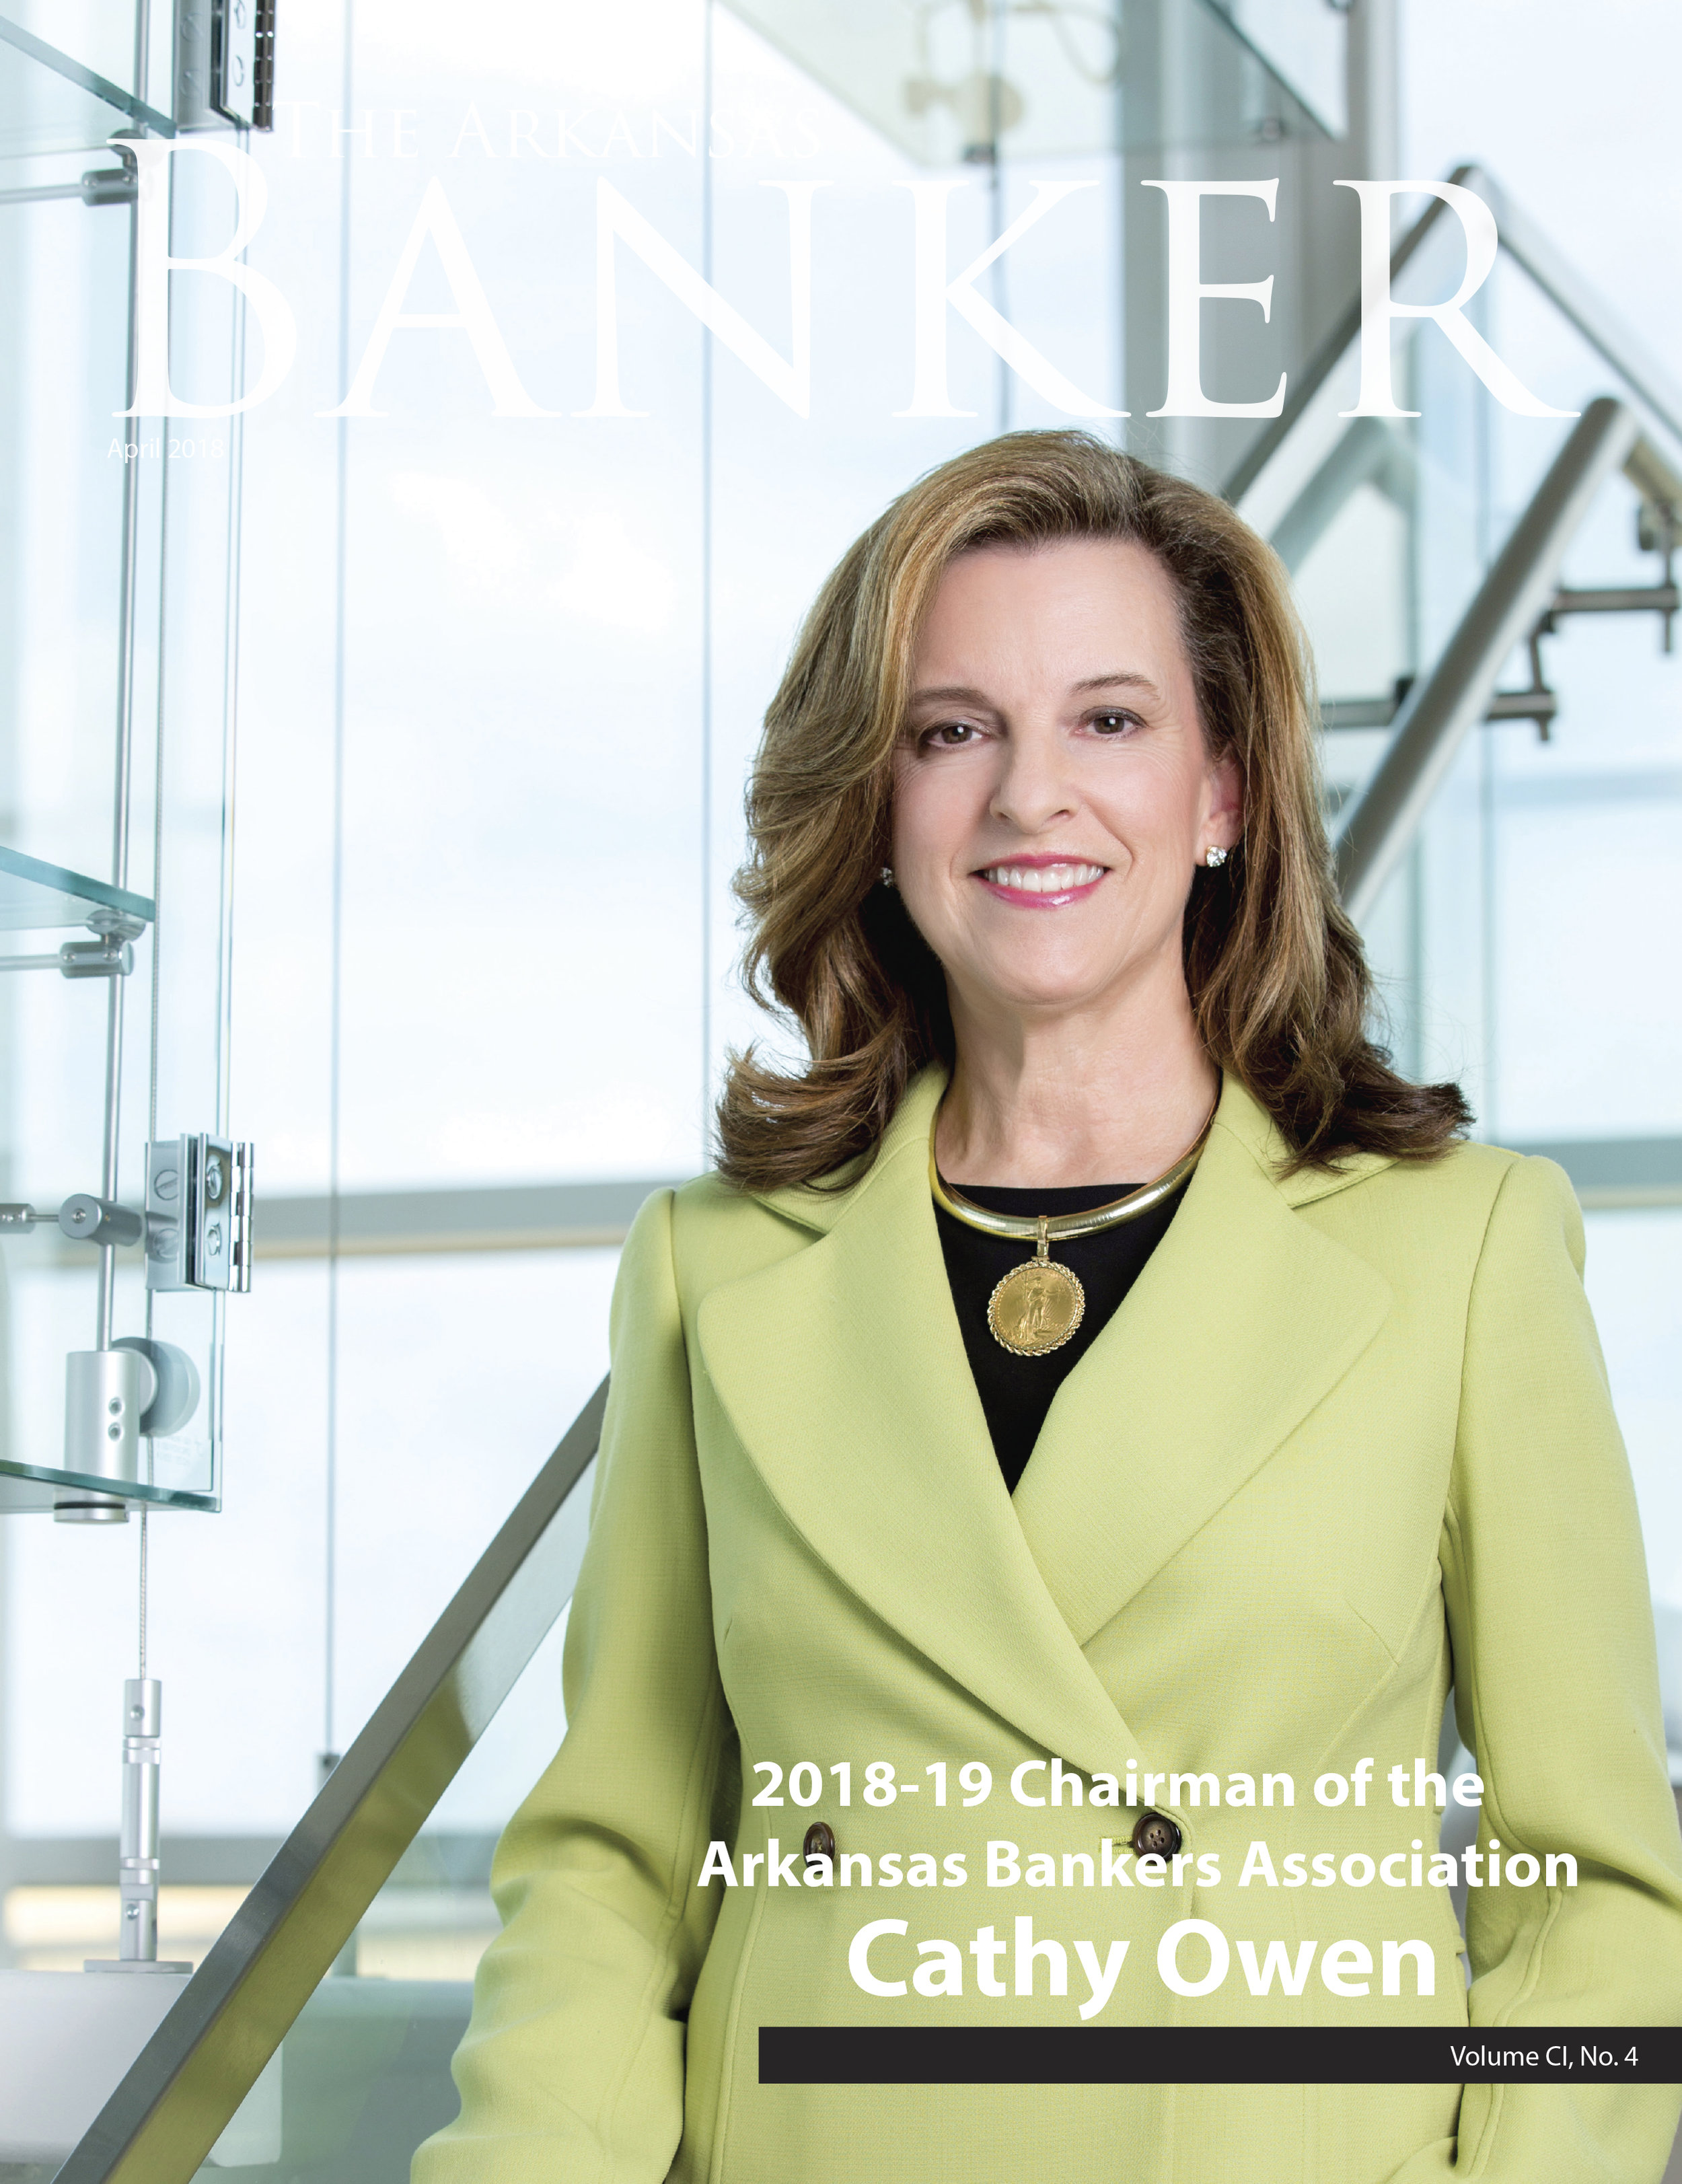 Cathy Owen, 2018-2019 Chariman of the Arkansas Bankers Association.